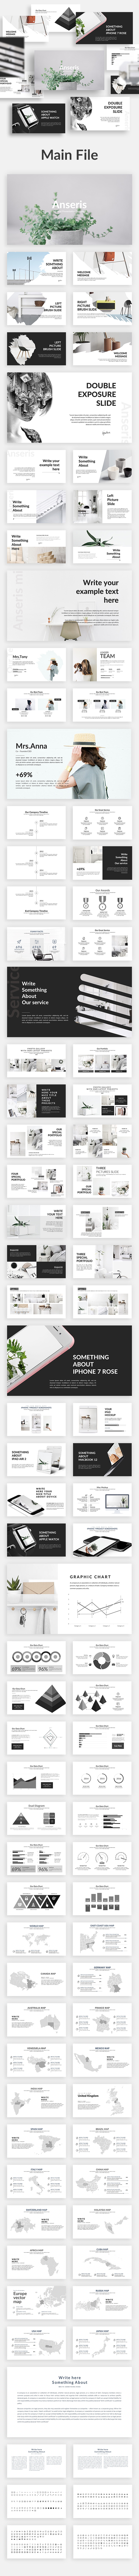 Anseris - Minimal Powerpoint Template (PowerPoint Templates)